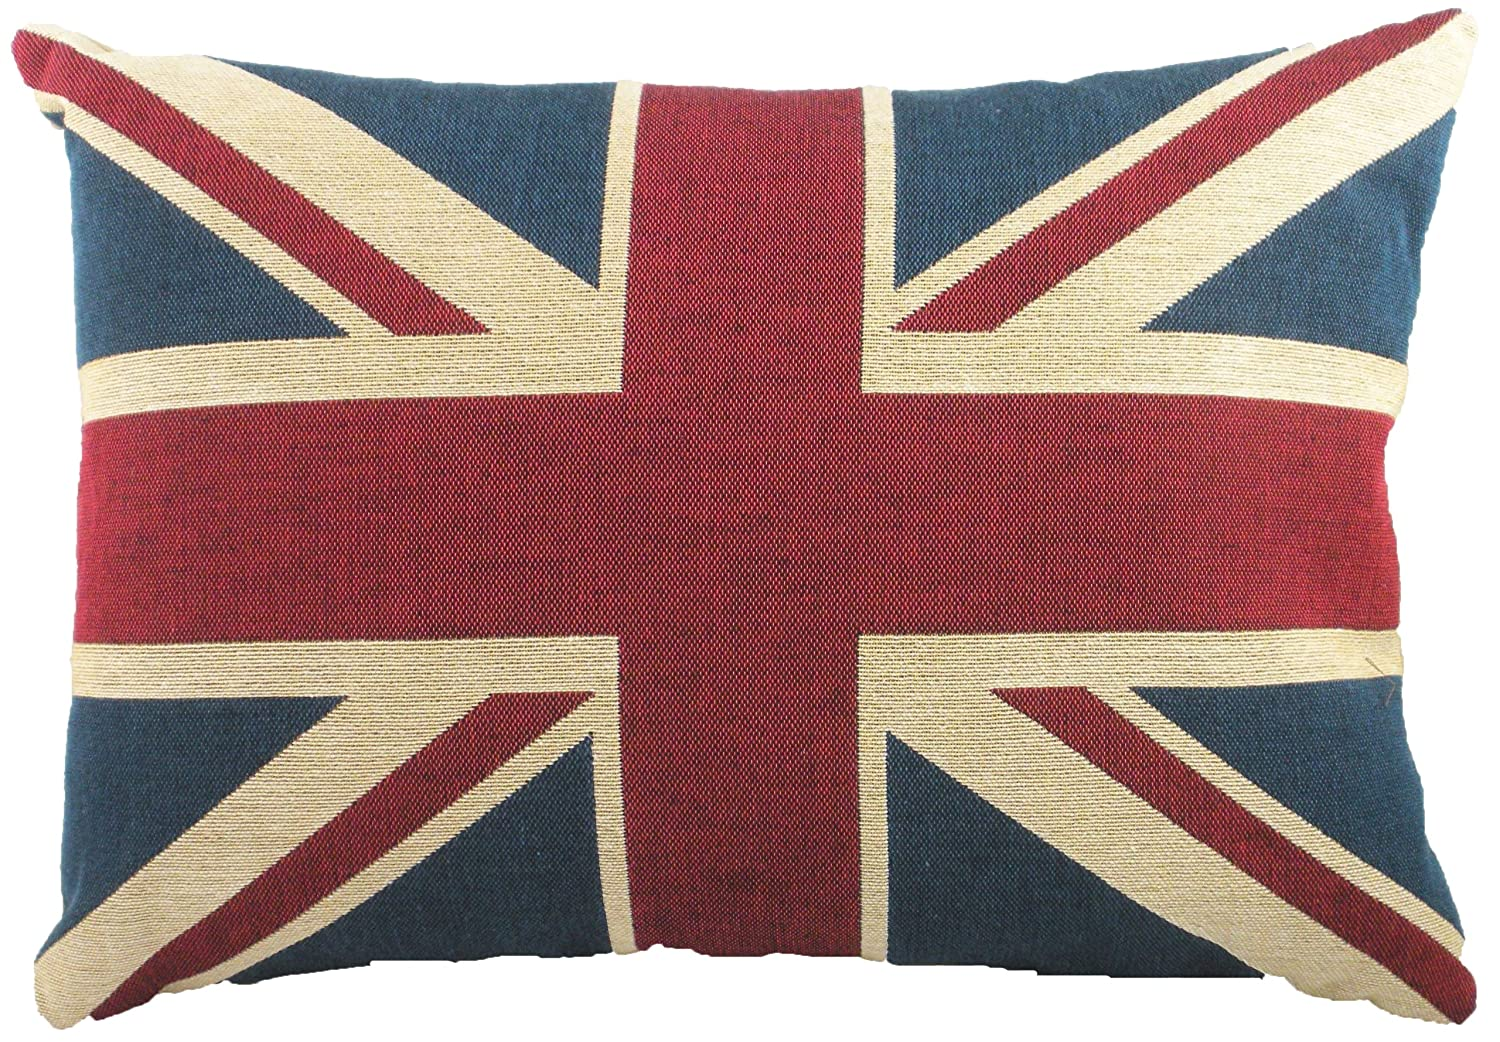 Evans Lichfield Union Jack Traditional Tapestry Cushion, 18 x 13 Inch, Polyester Fibre Filled LB363 Cushions Home_Furnishings flag cushions